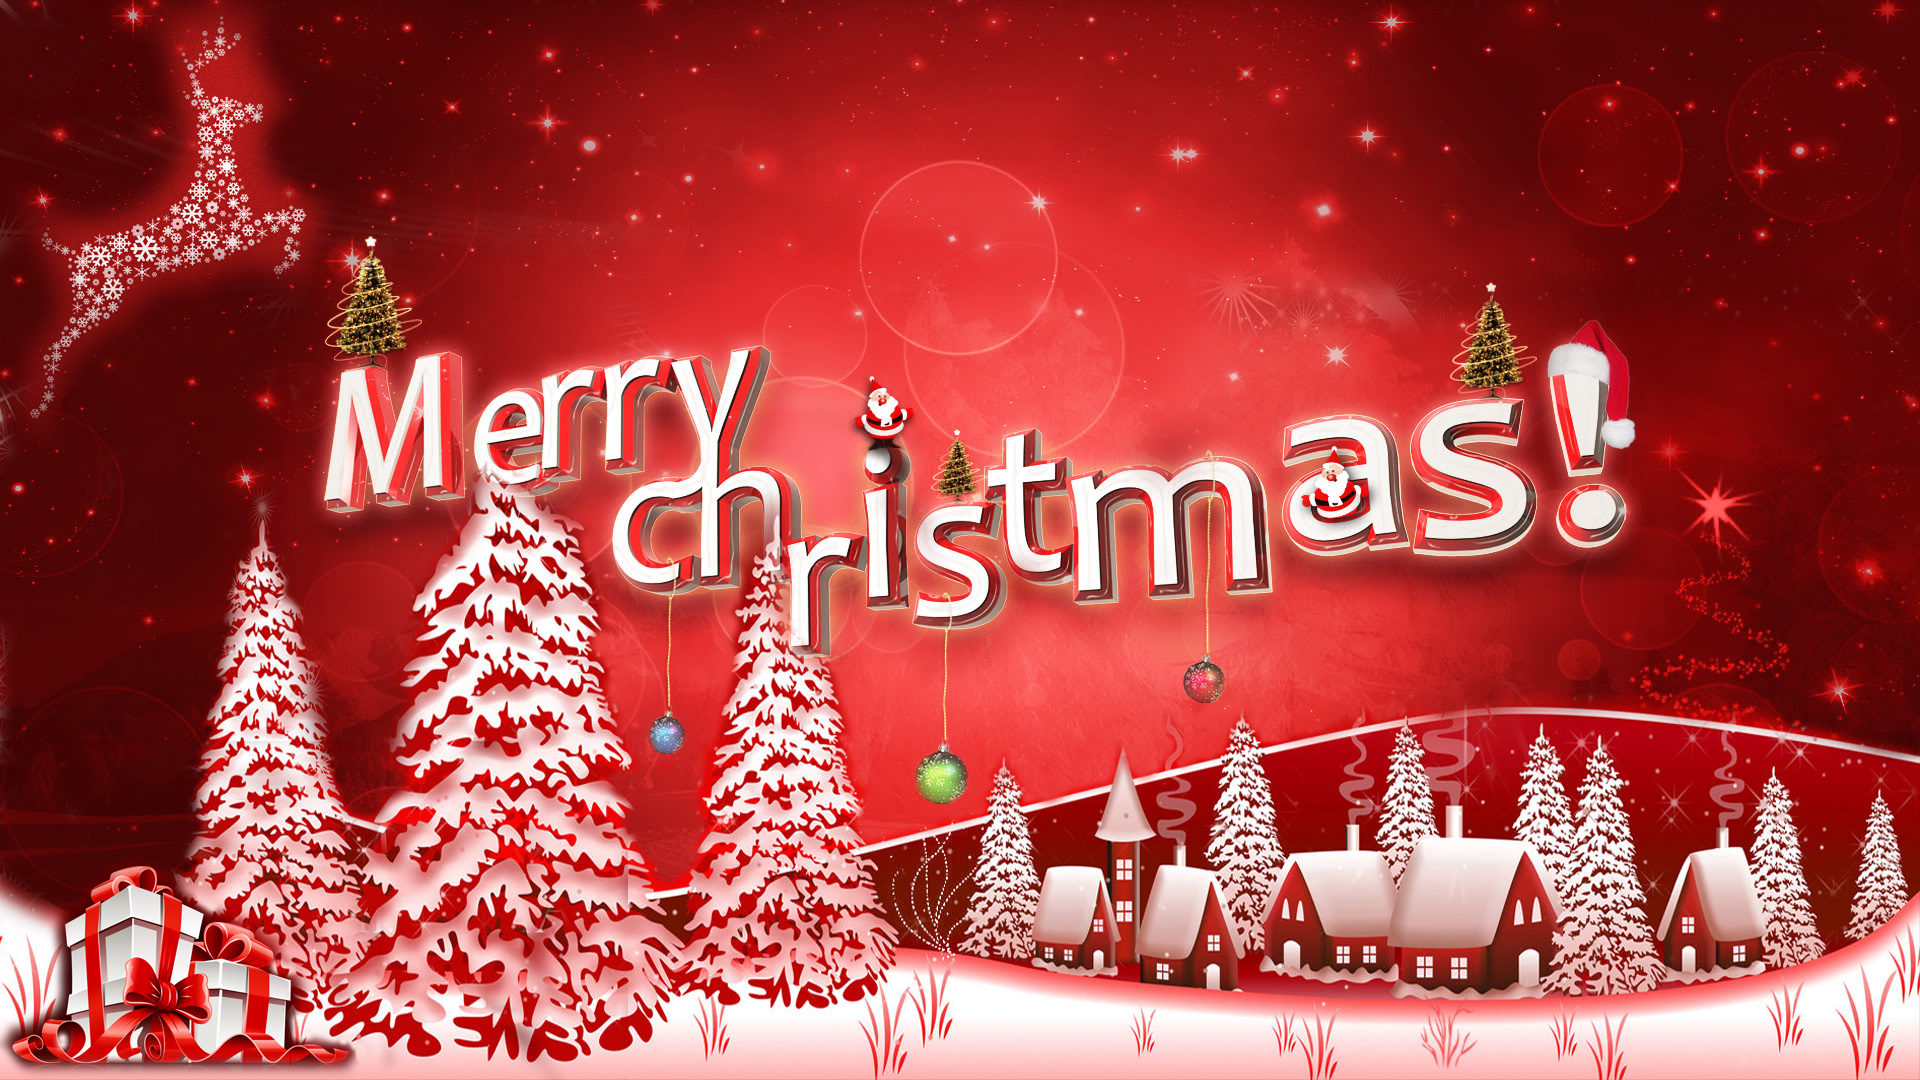 merry christmas wishes greetings new hd wallpaper